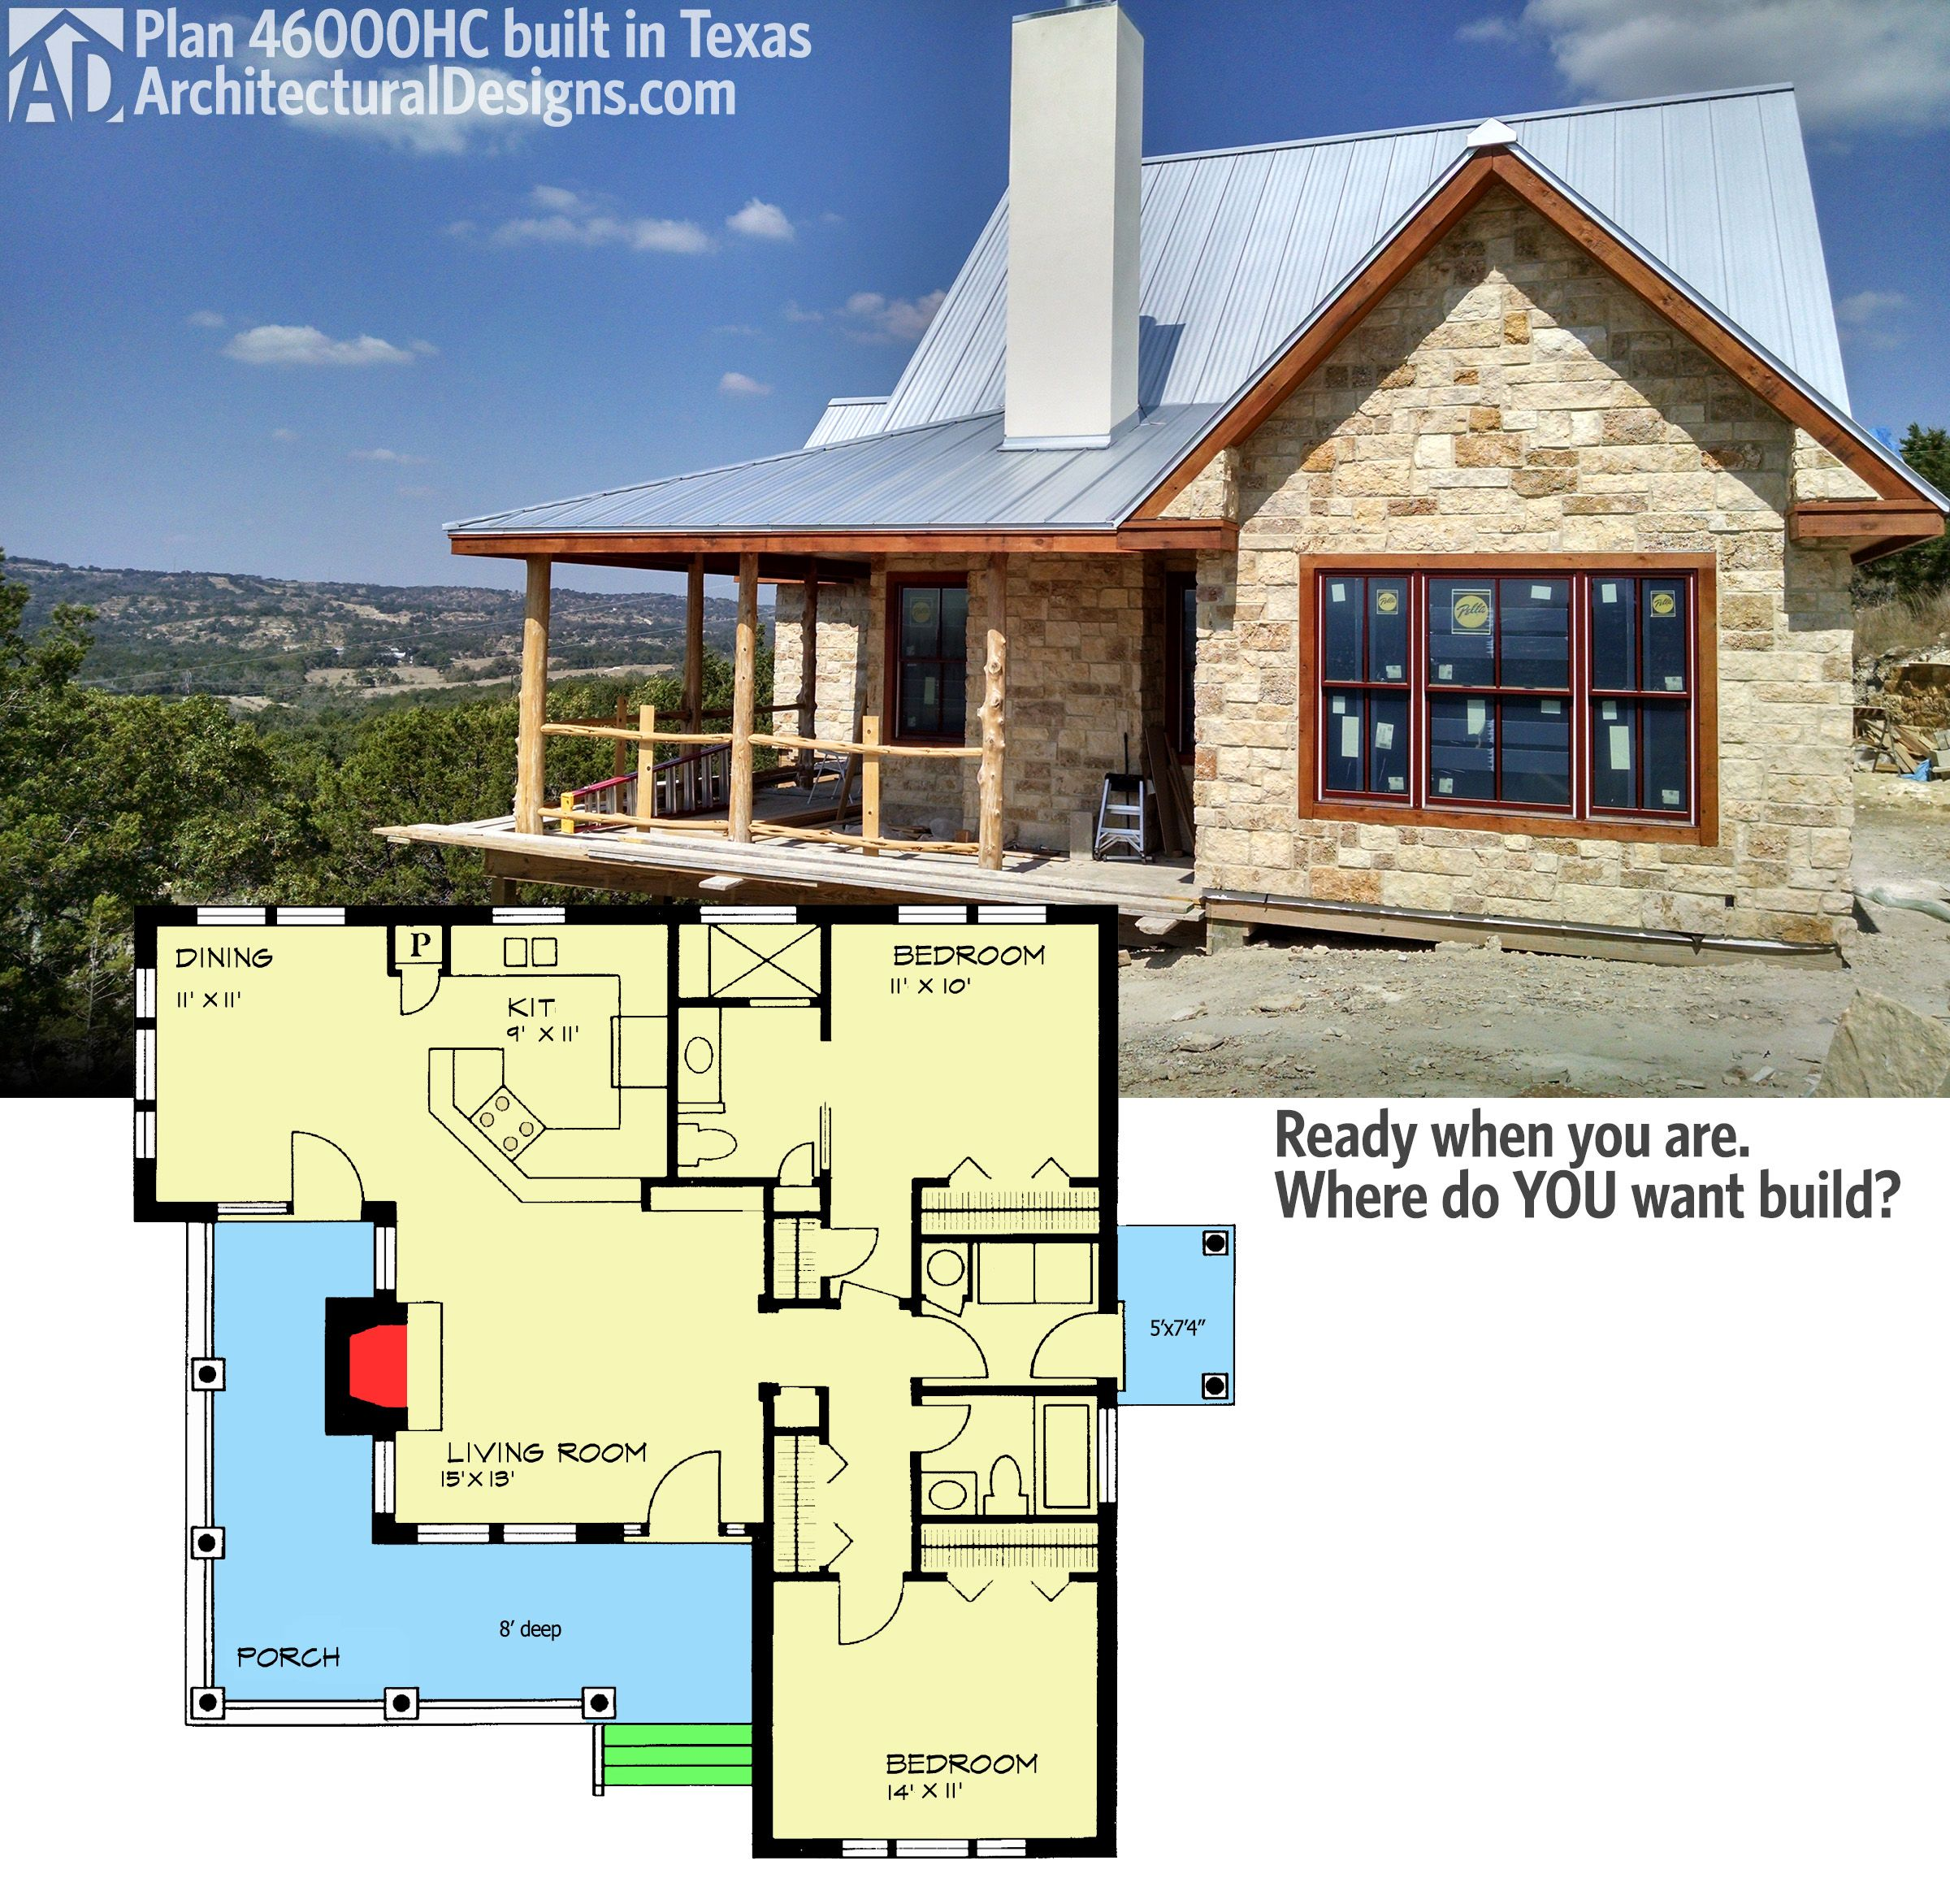 Plan 46000HC: Hill Country Clic | Country house plans ... on luxury homes texas, small log homes texas, house plans texas, small house texas, small home builders texas,